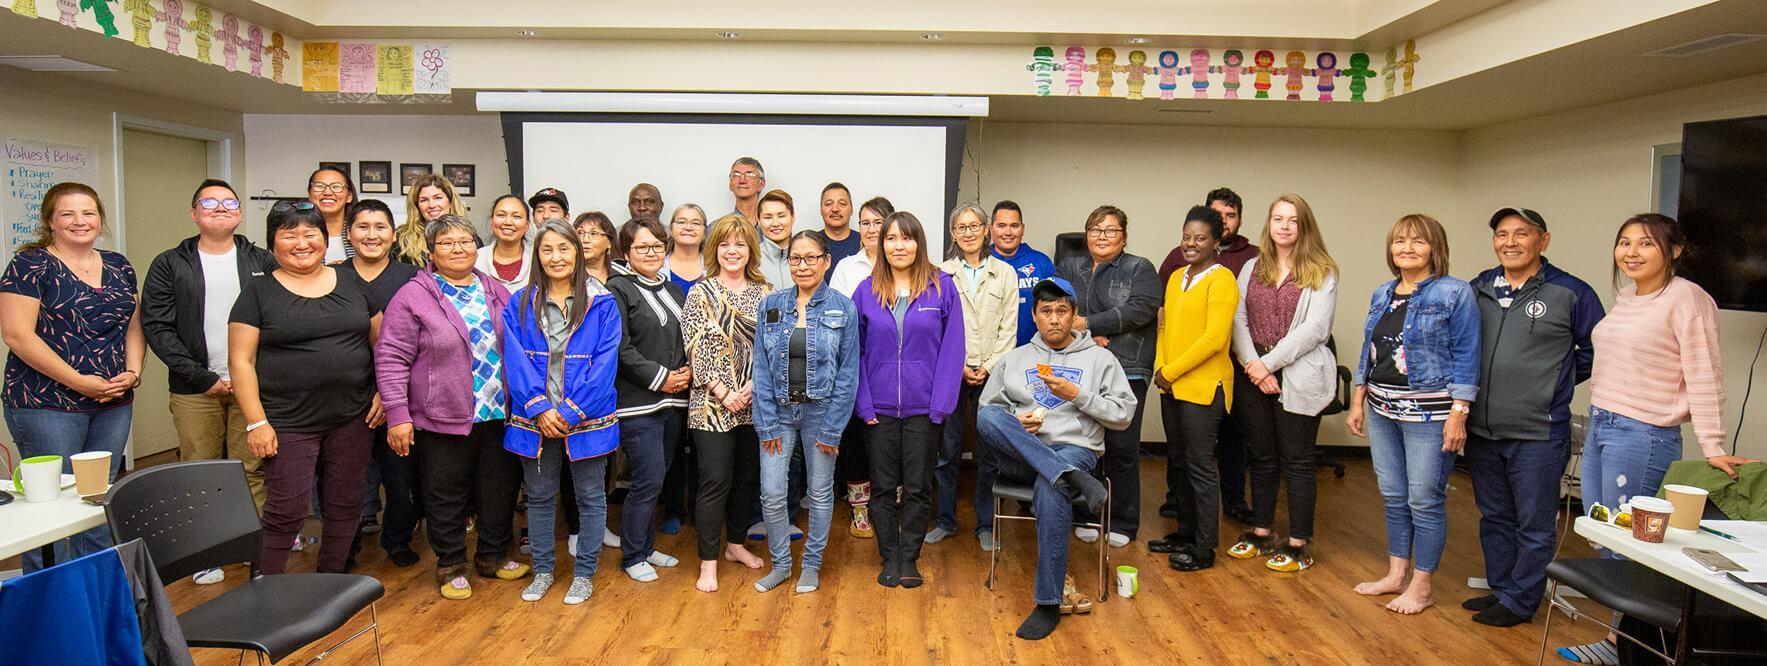 Promoting Psychological Safety in the Workplace workshop, Inuvik